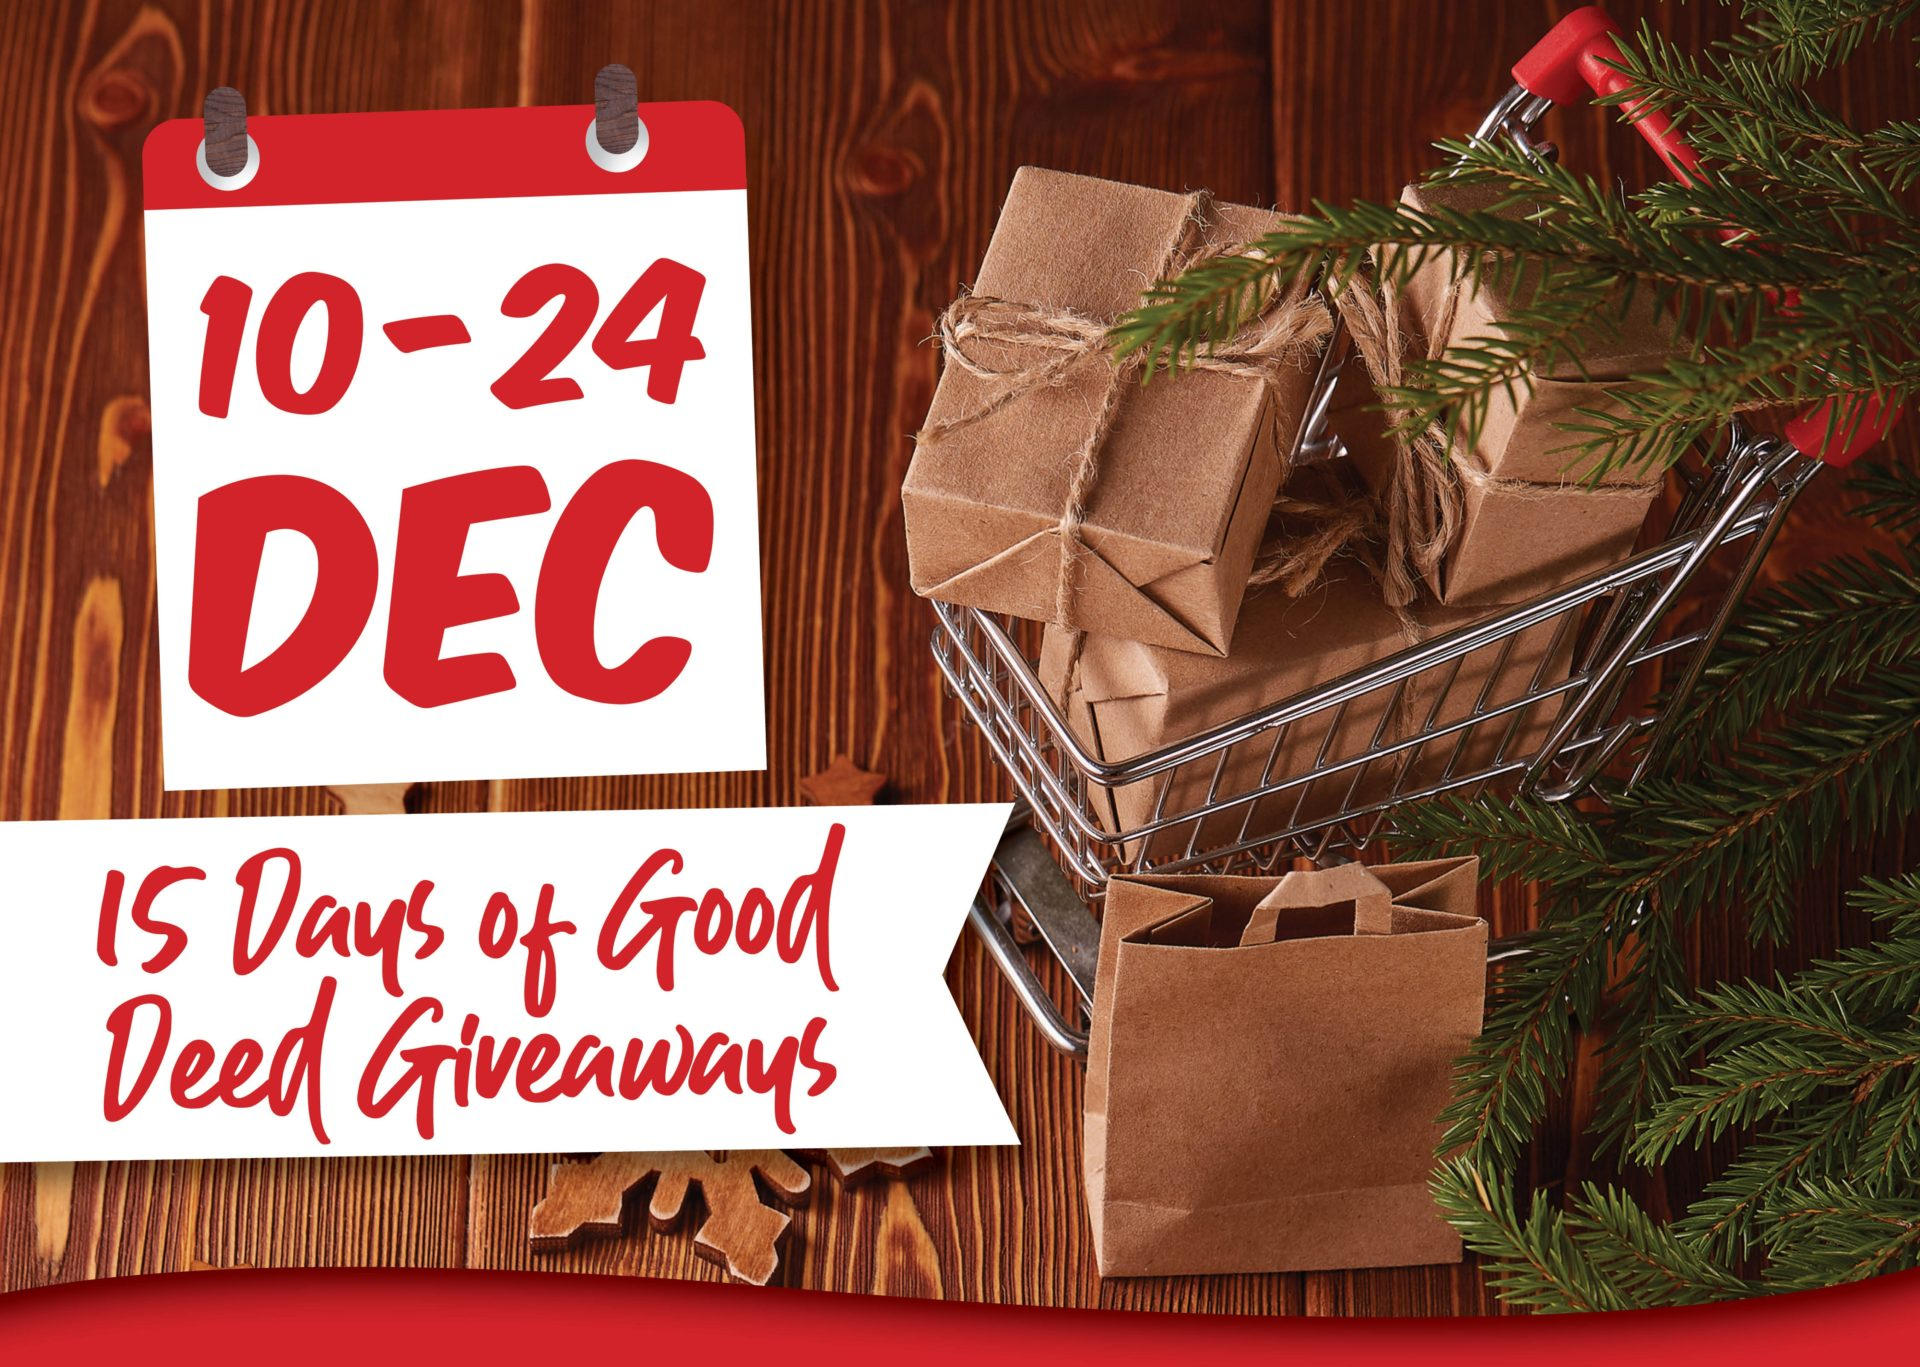 15 Days of Grocery Giveaways!